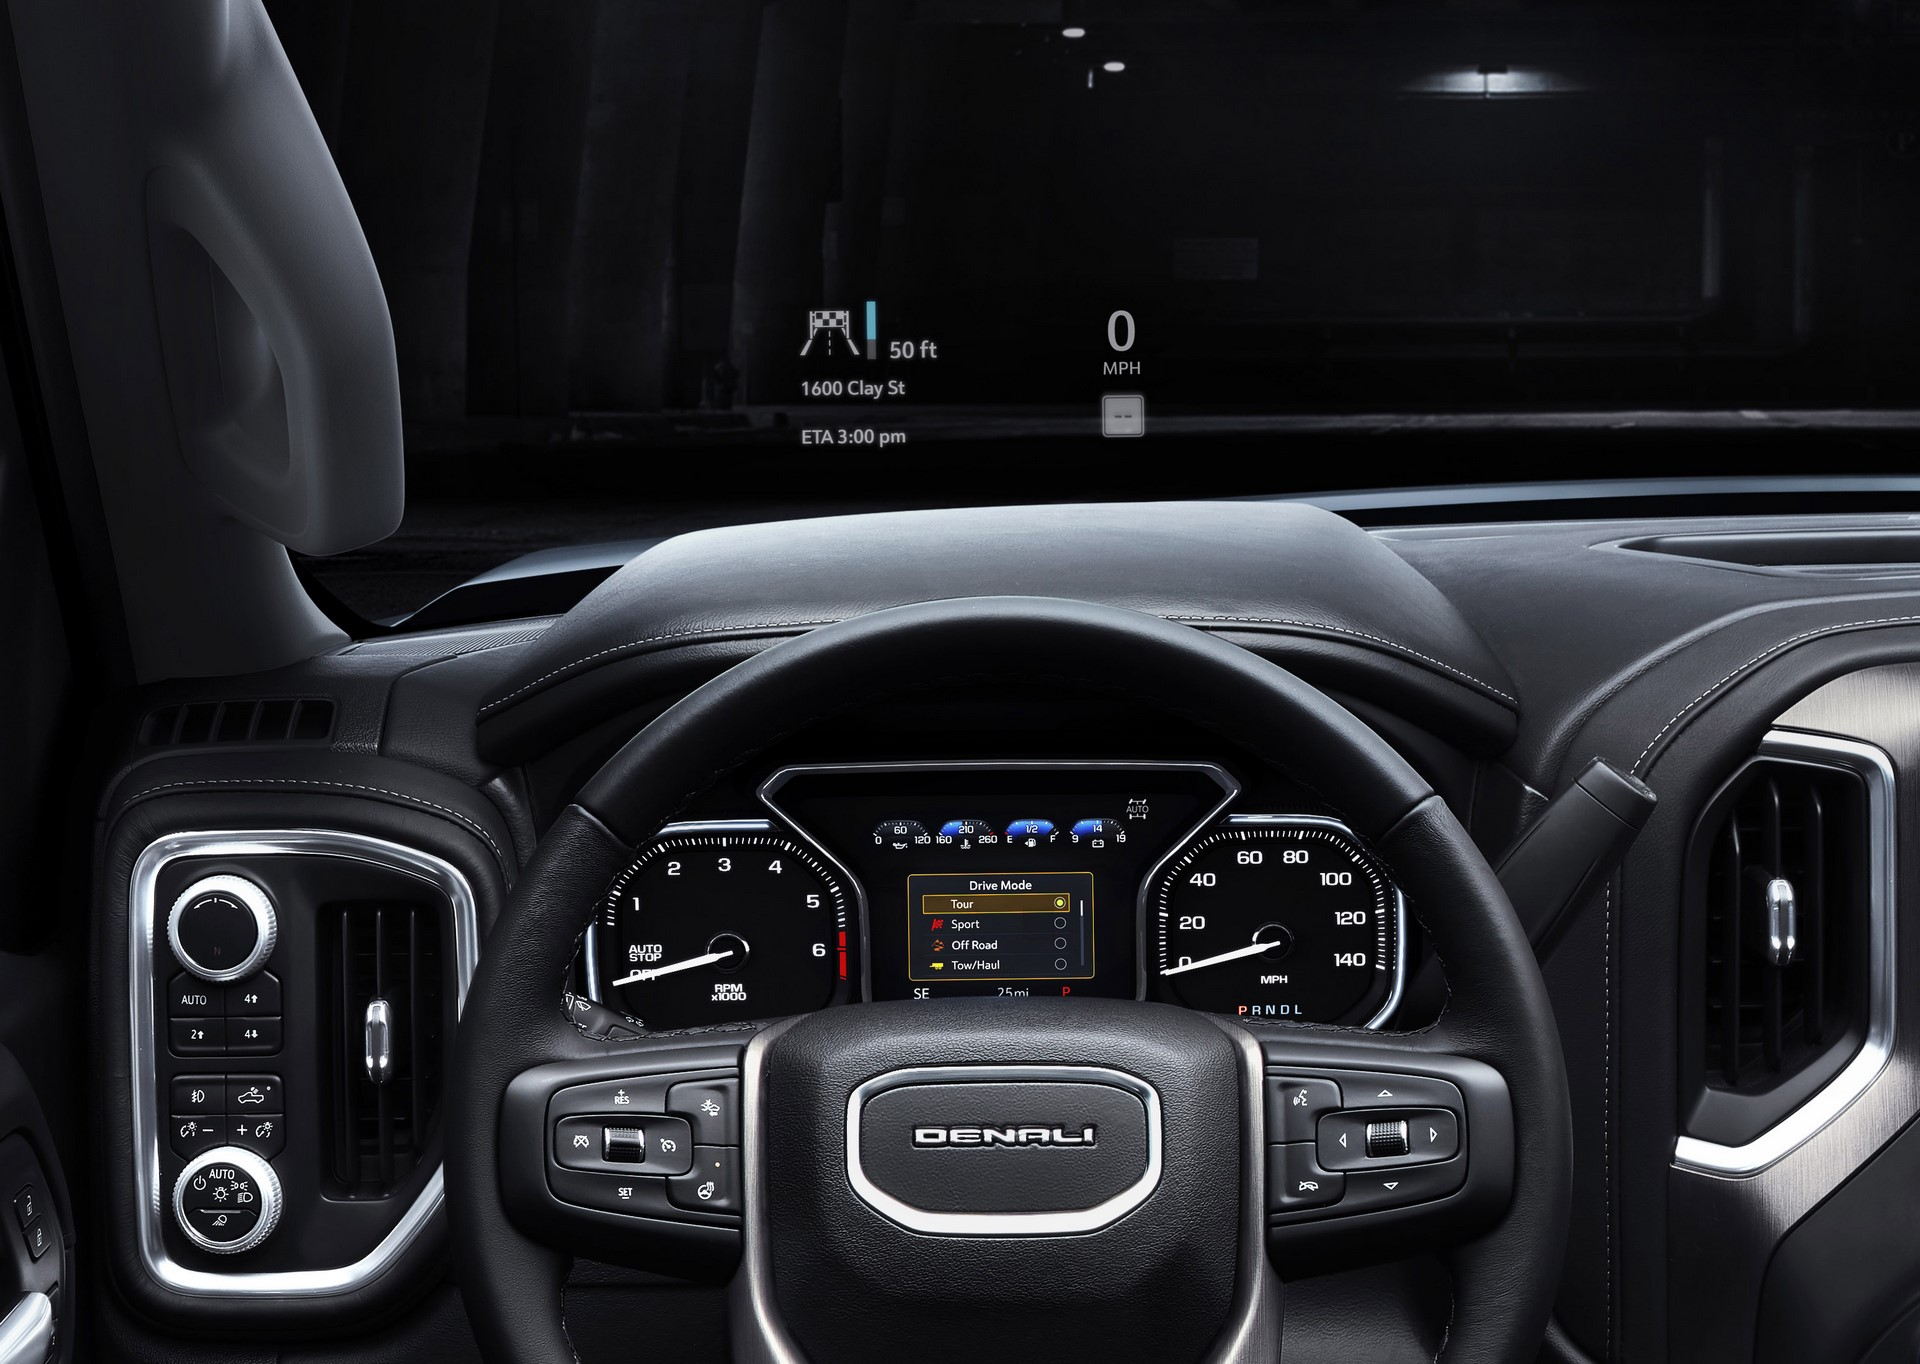 2019 GMC Sierra Denali Head-up display